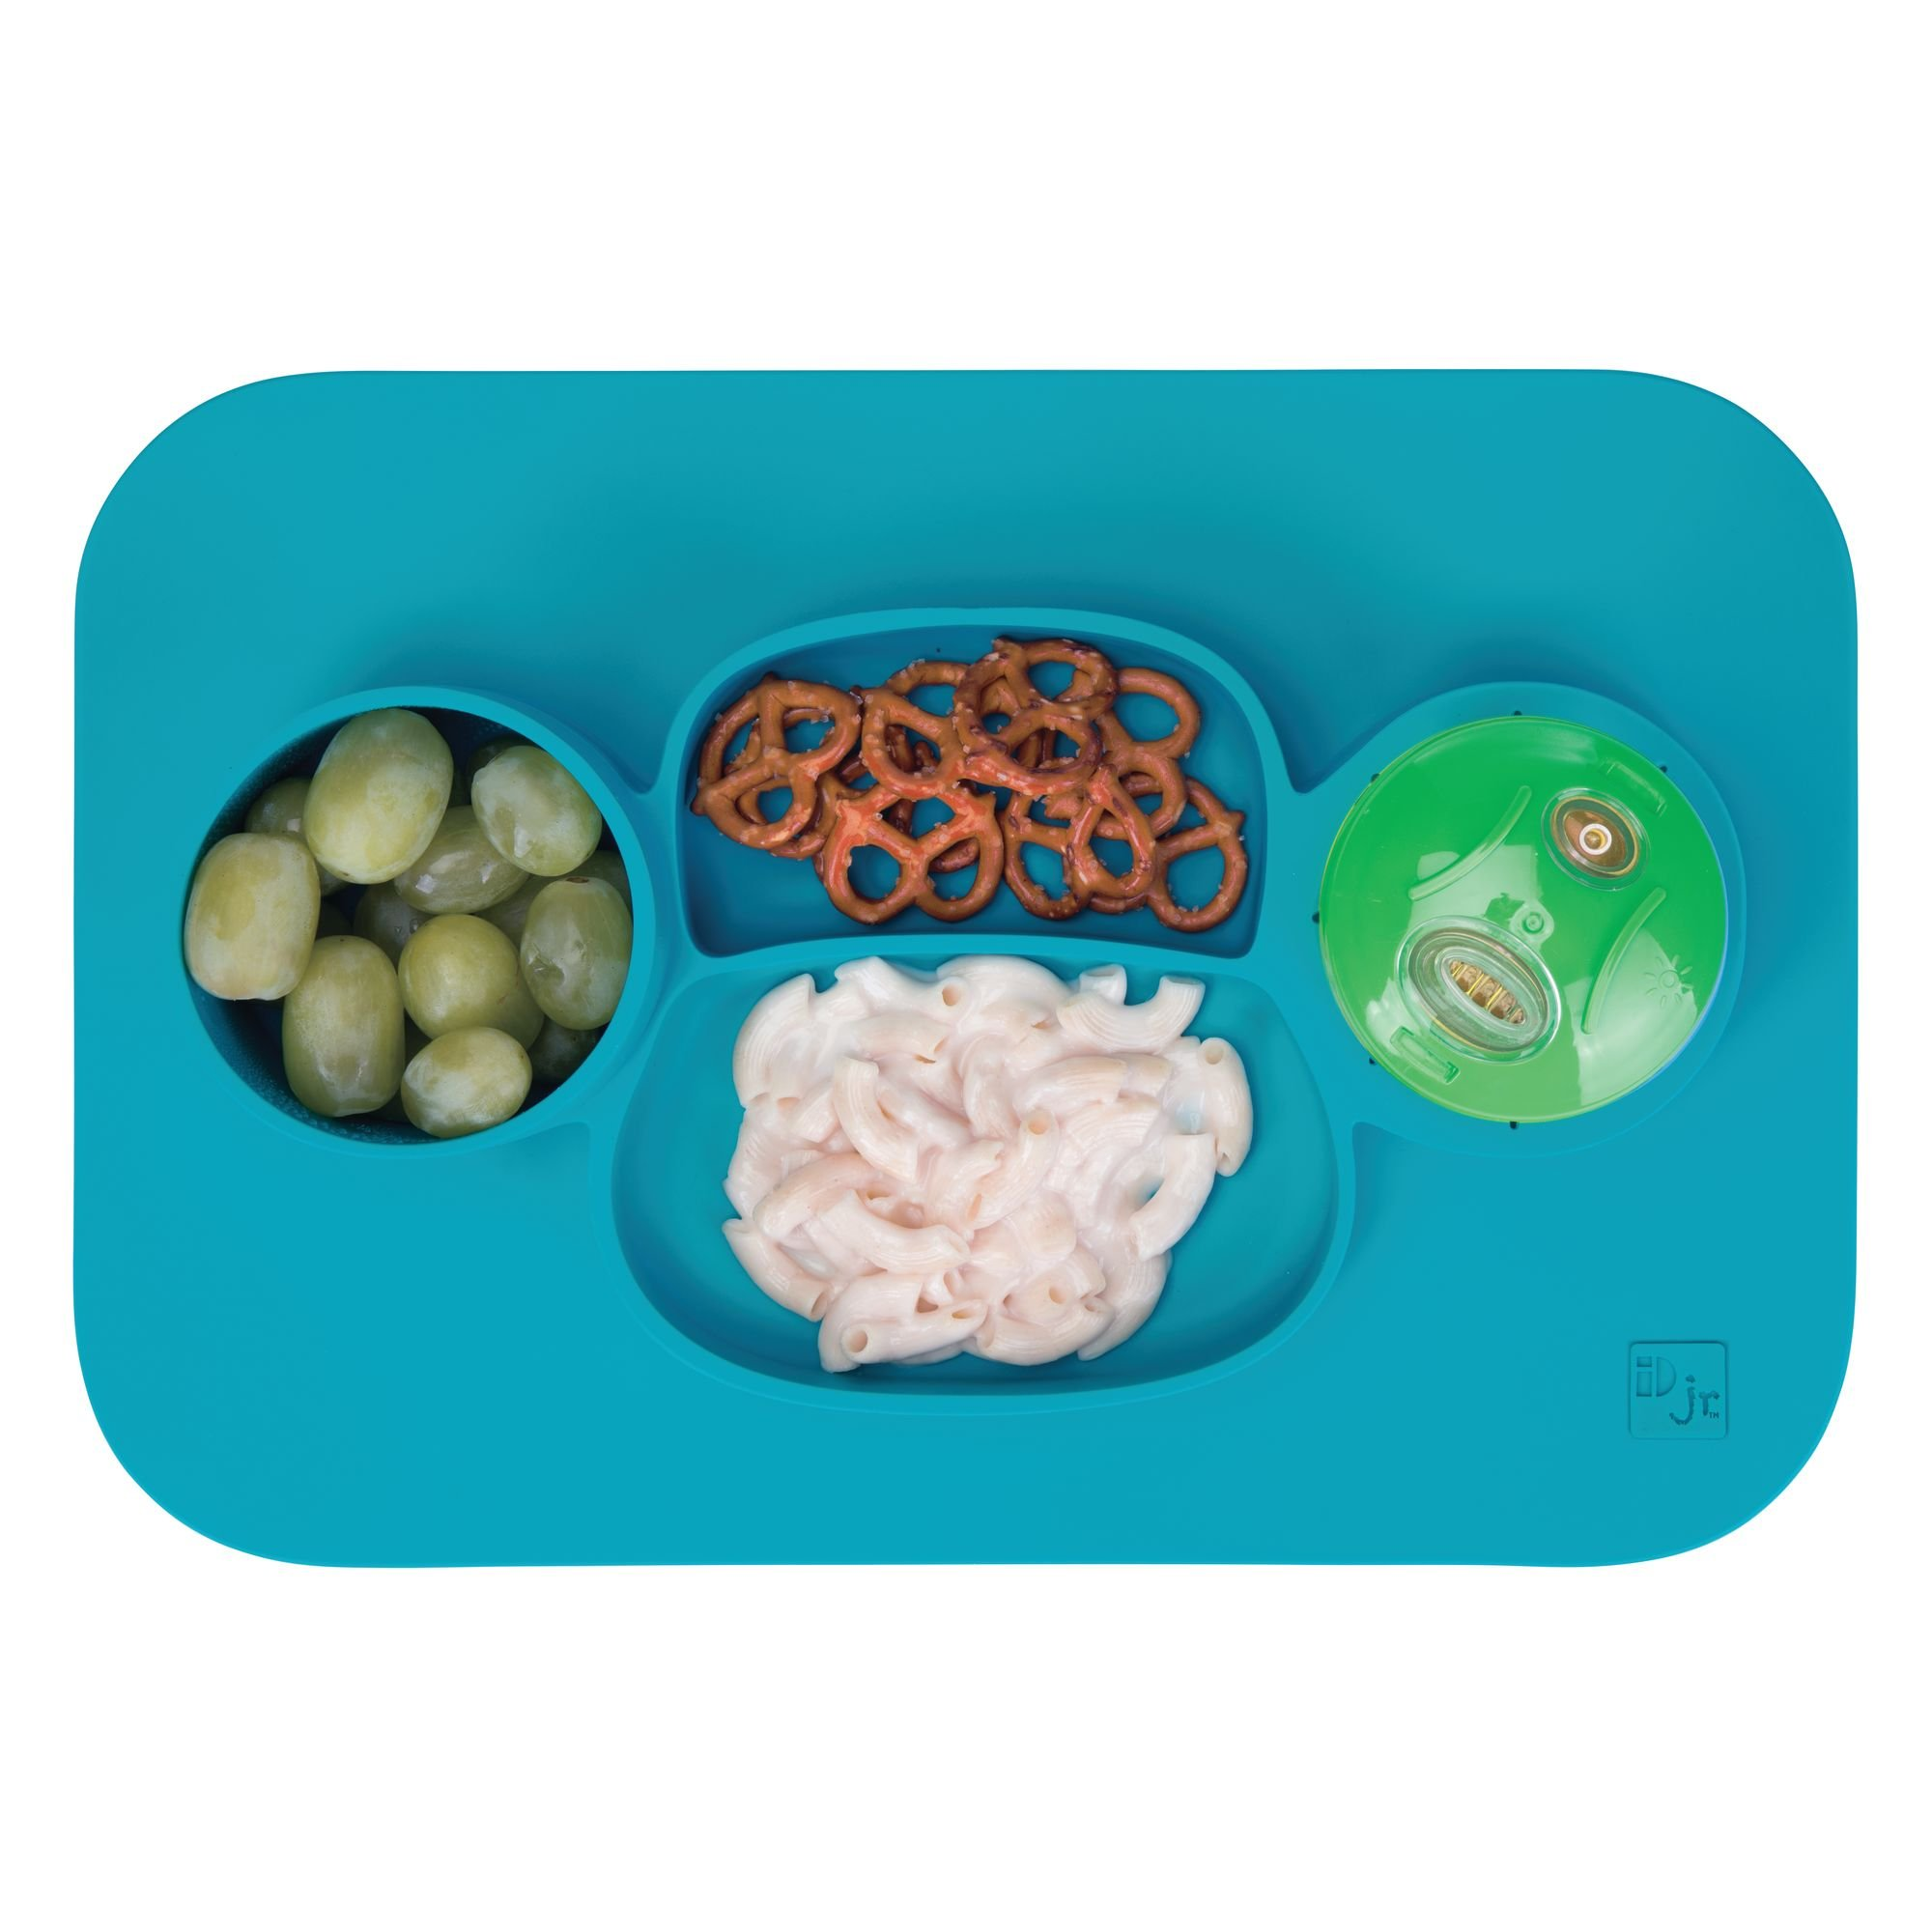 mDesign Silicone Mealtime Plate and Placemat for Babies, Toddlers, Kids - BPA Free, Food Safe � Stays in Place � 4 Sections - Microwave and Dishwasher Safe, Fun Monkey Design, Large, Teal Blue